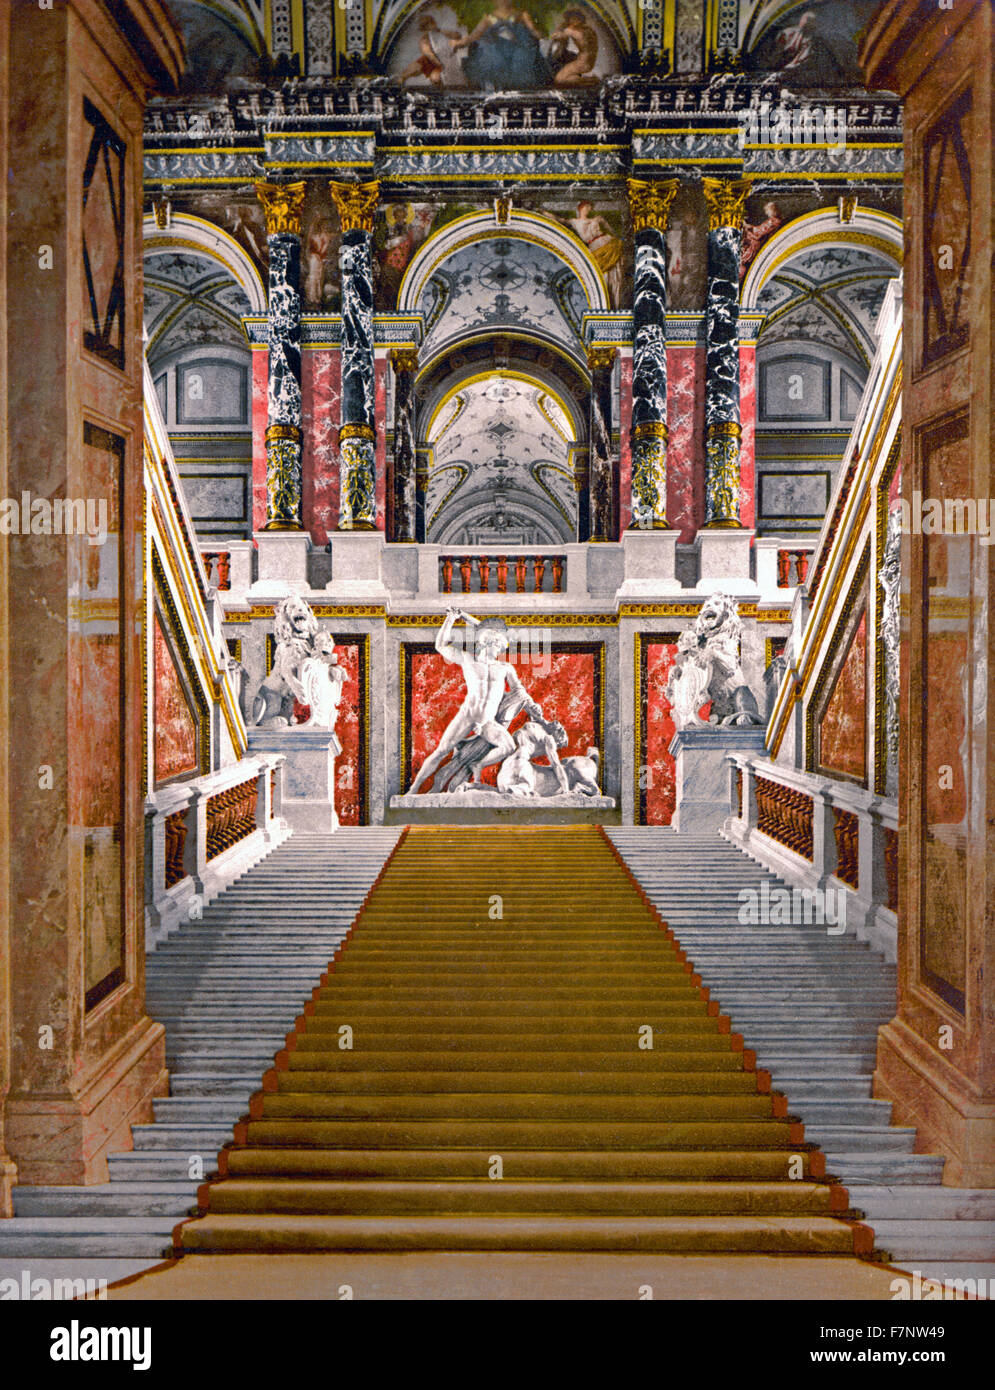 The Museum of Arts, the staircase, Vienna, Austro-Hungary - Stock Image